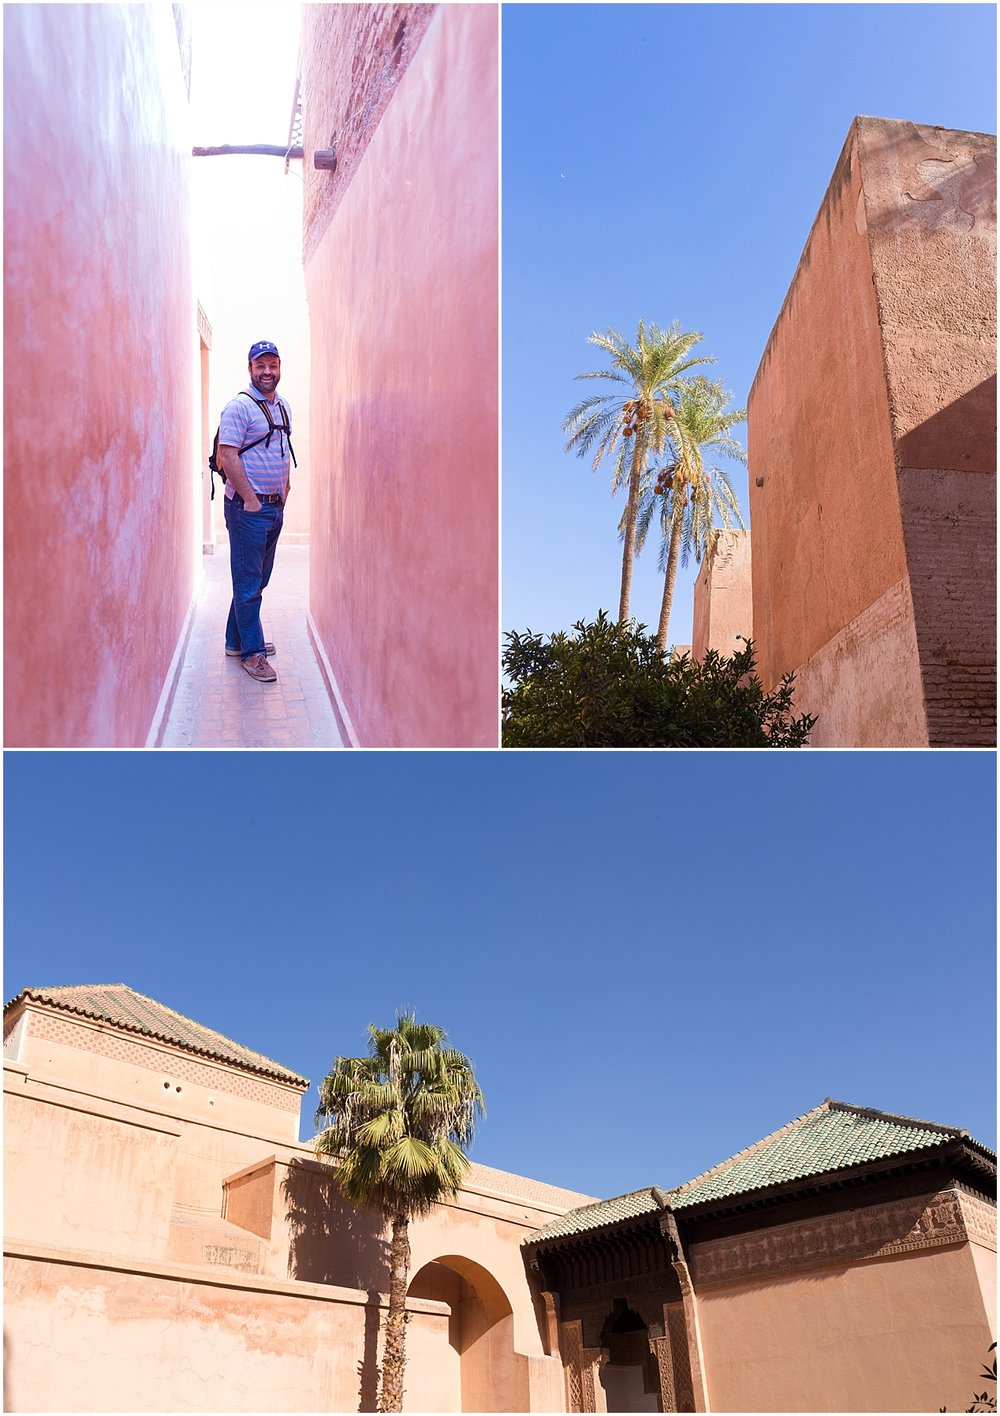 entrance to Saadian Tombs of Marrakech